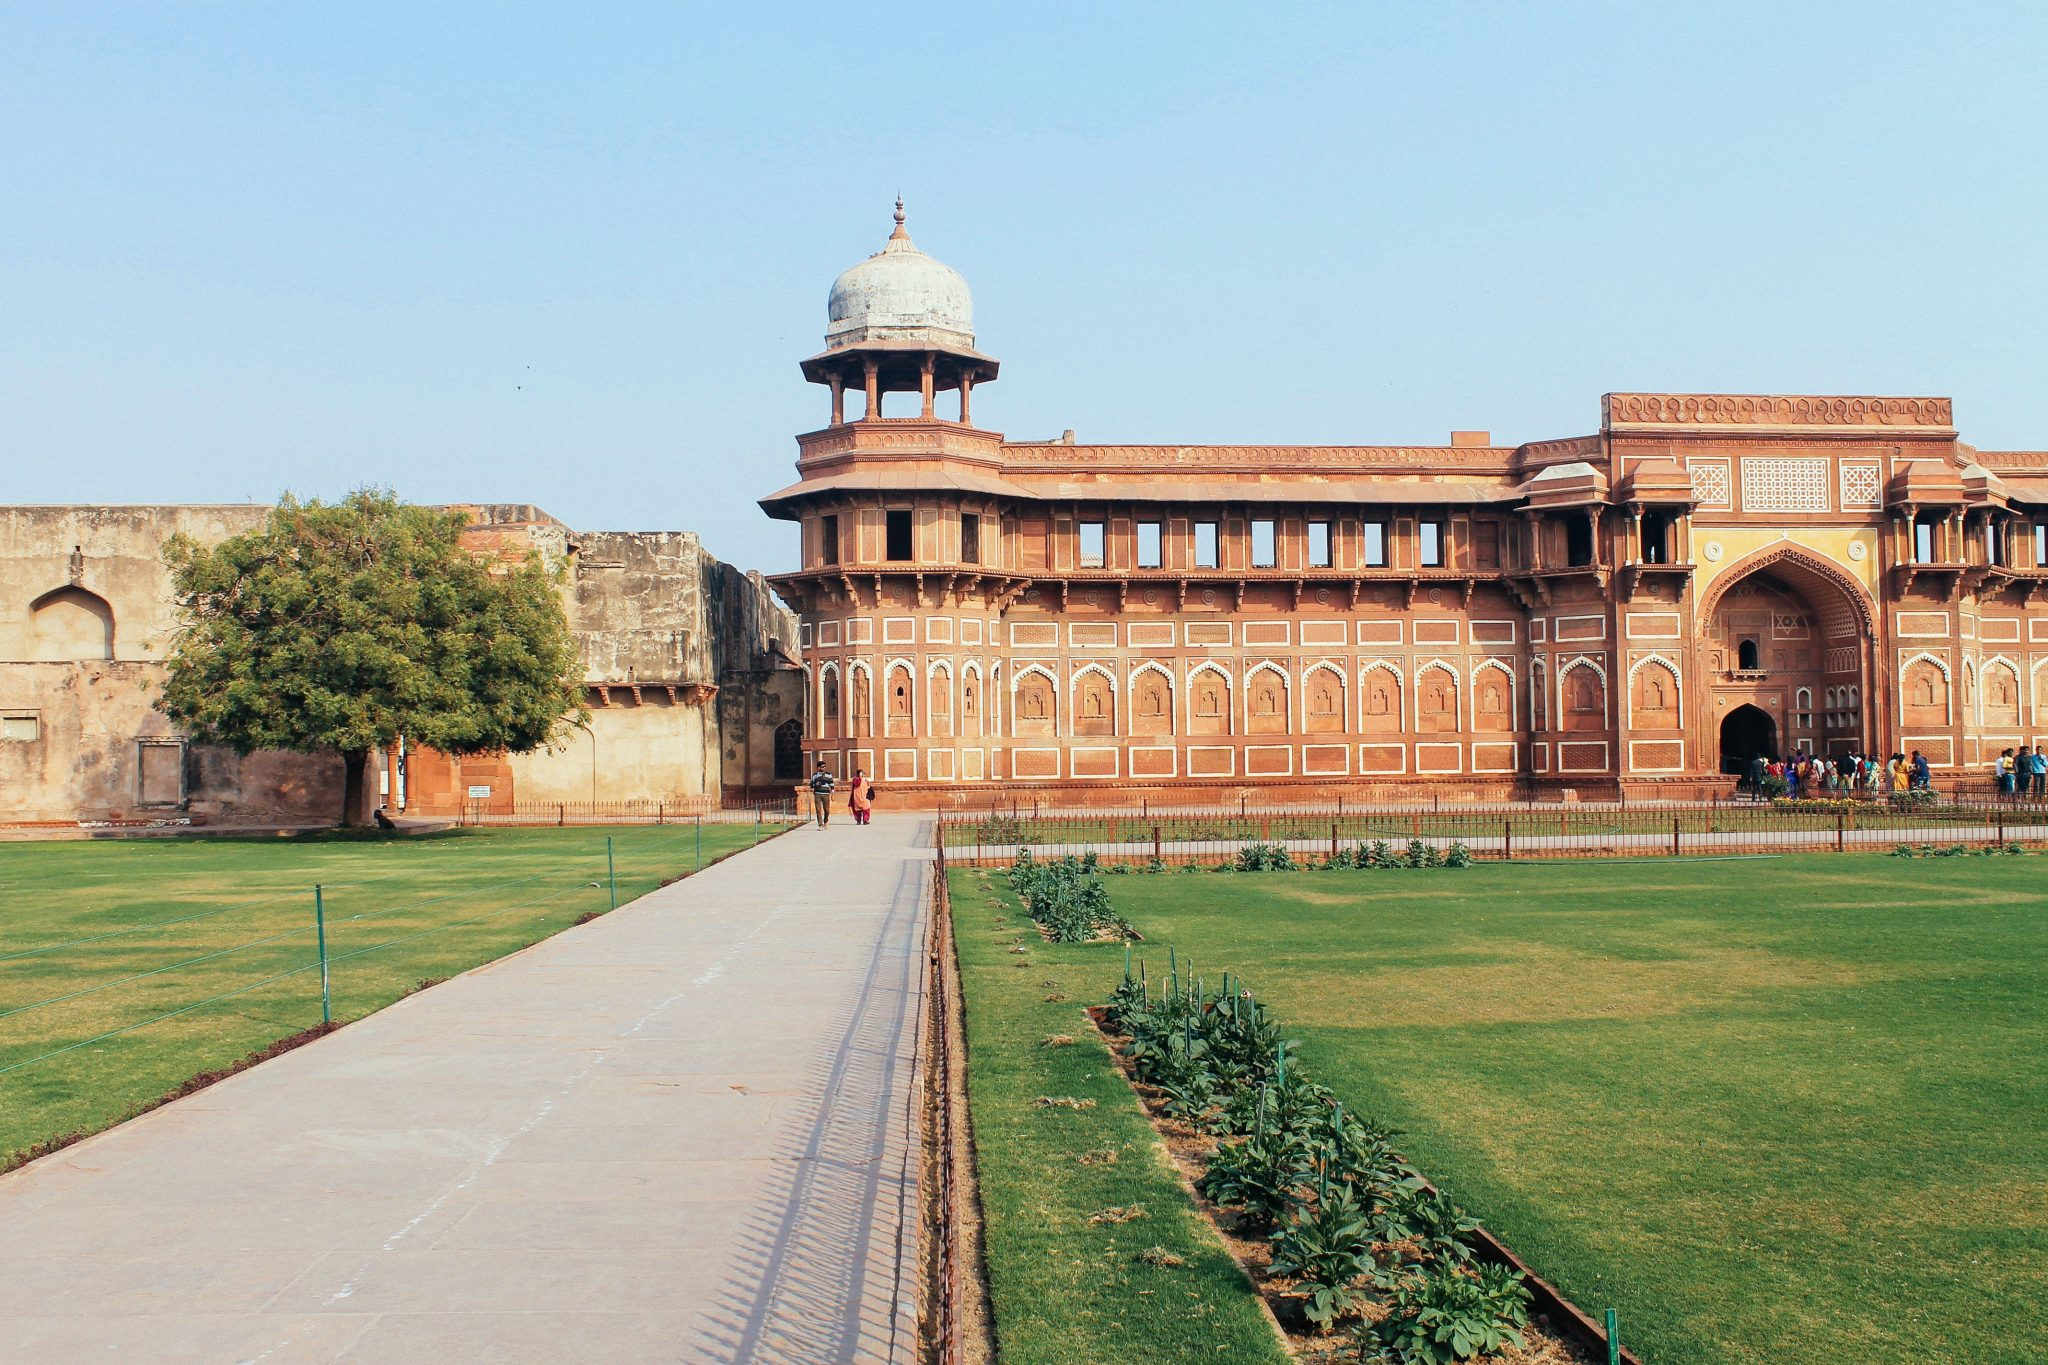 Agra Fort, Agra Attractions, Rajasthan | India Trip | India itinerary 2 weeks